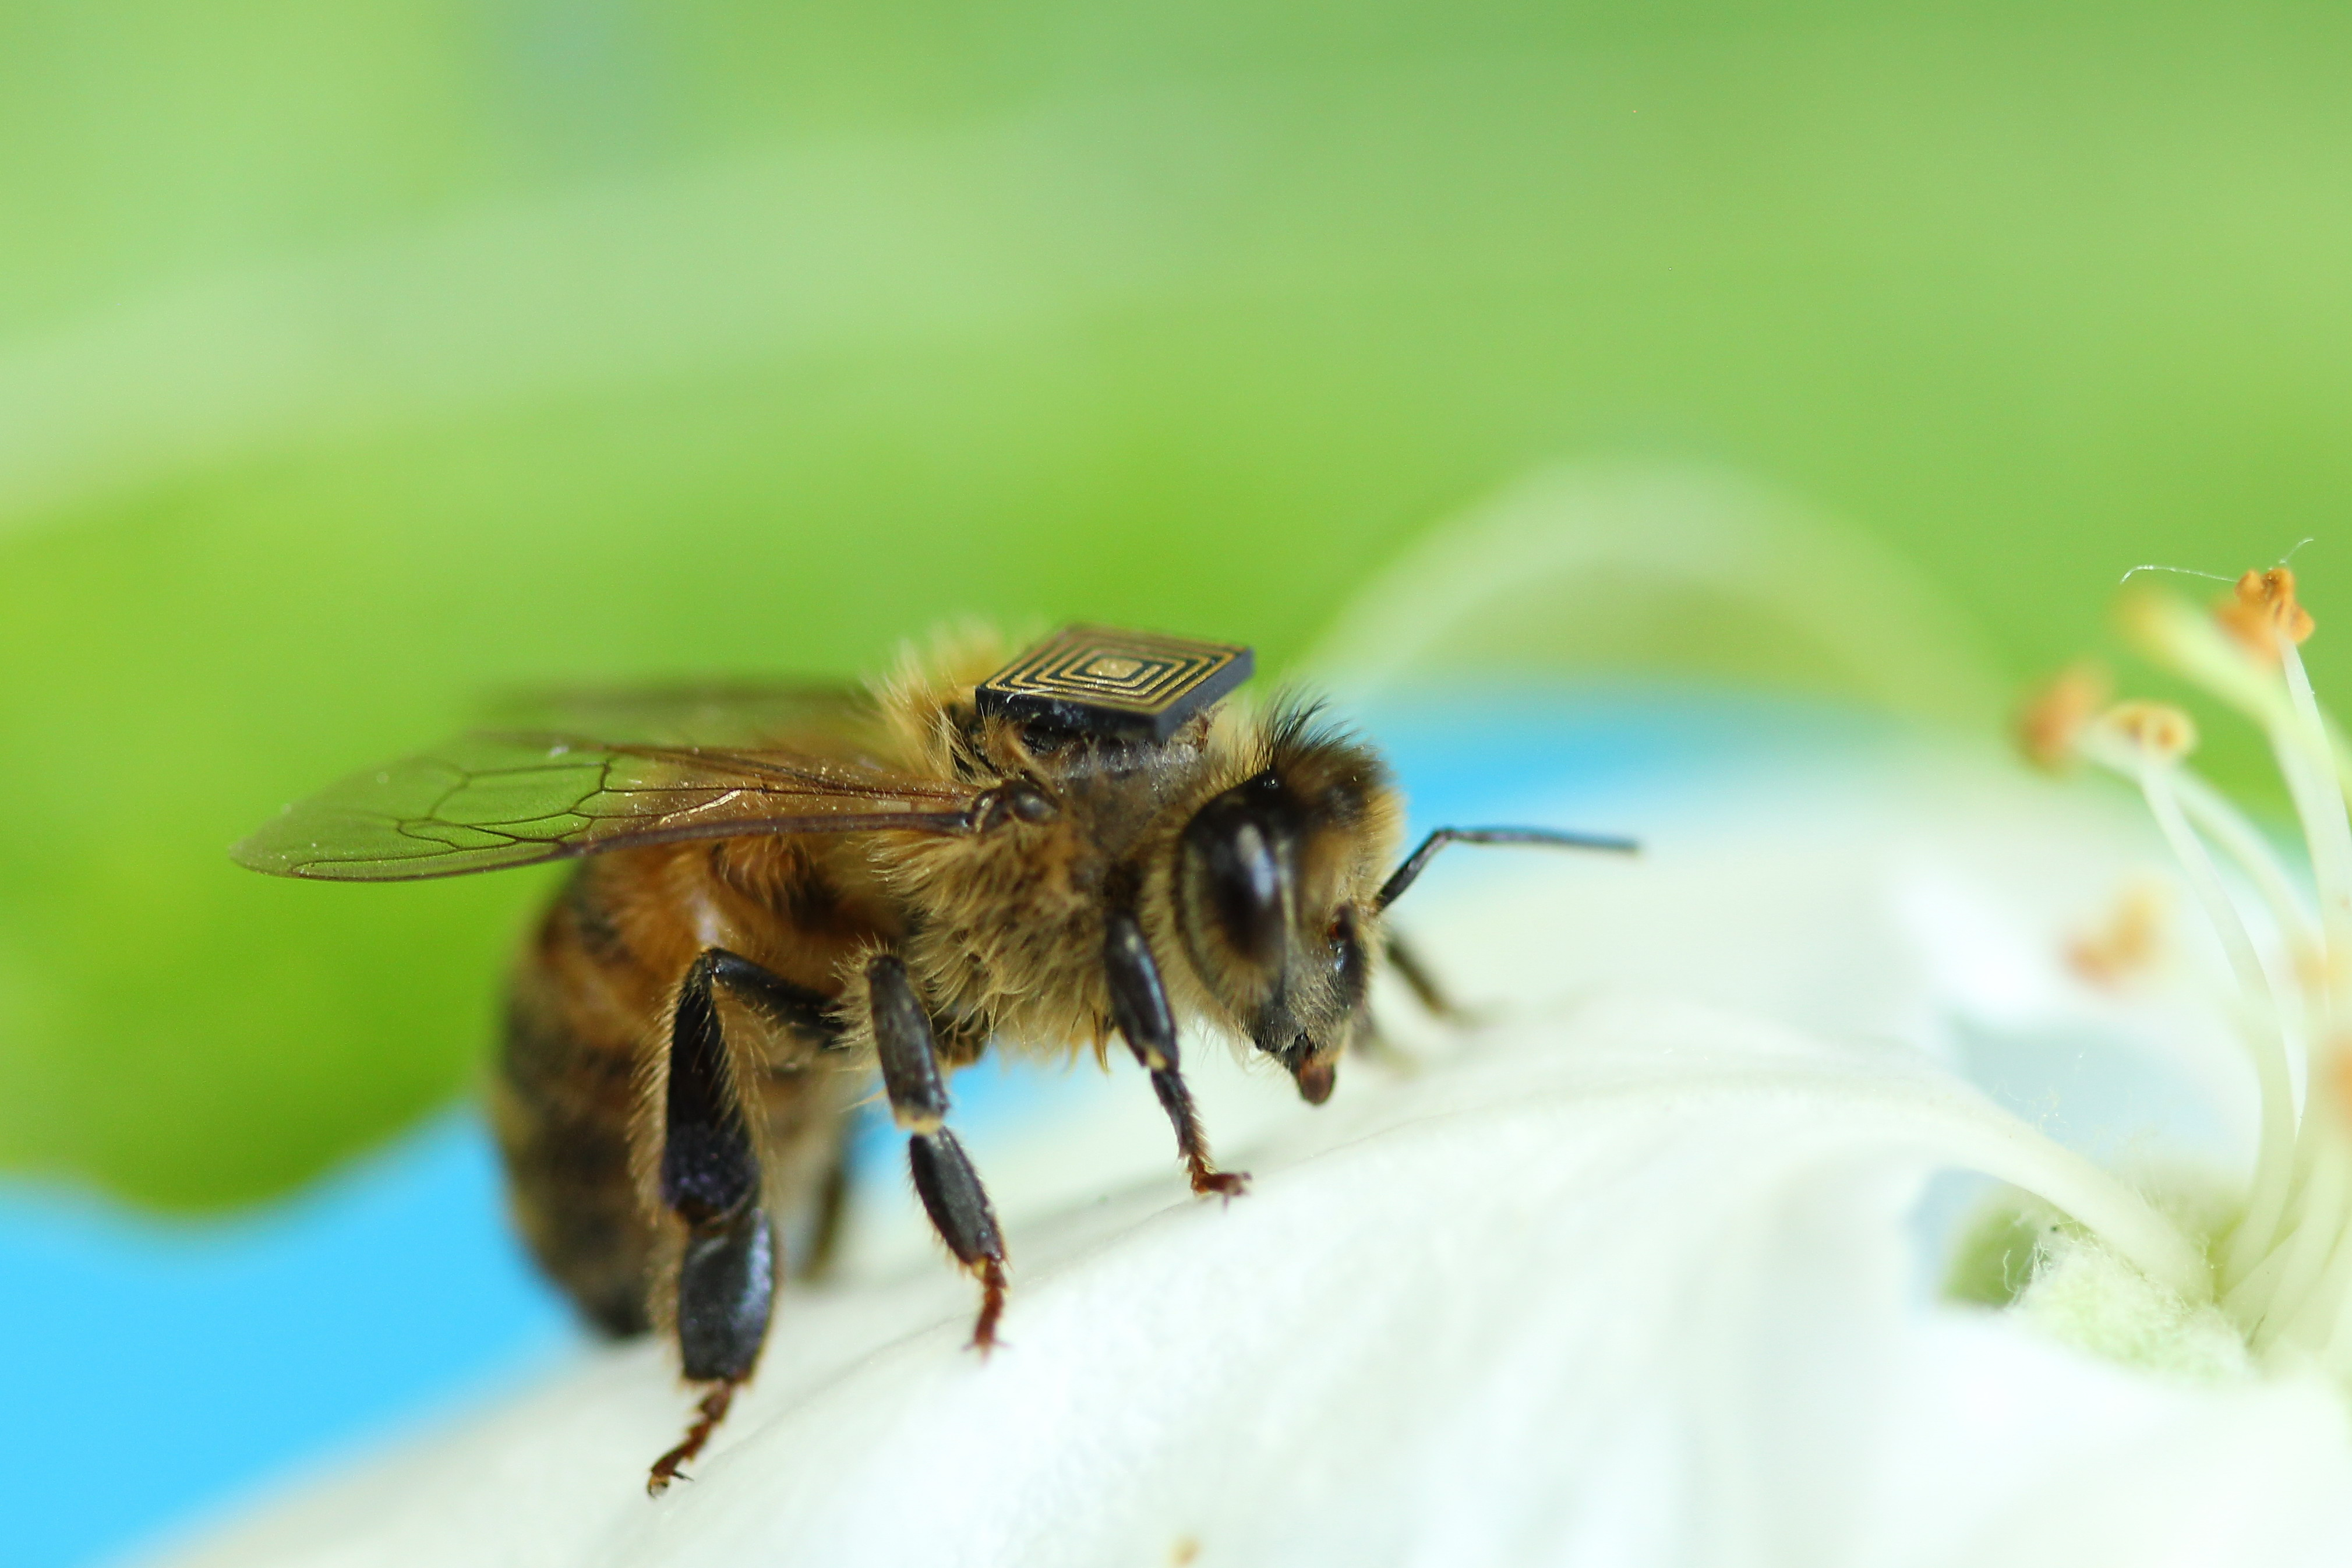 Bee with backpack/